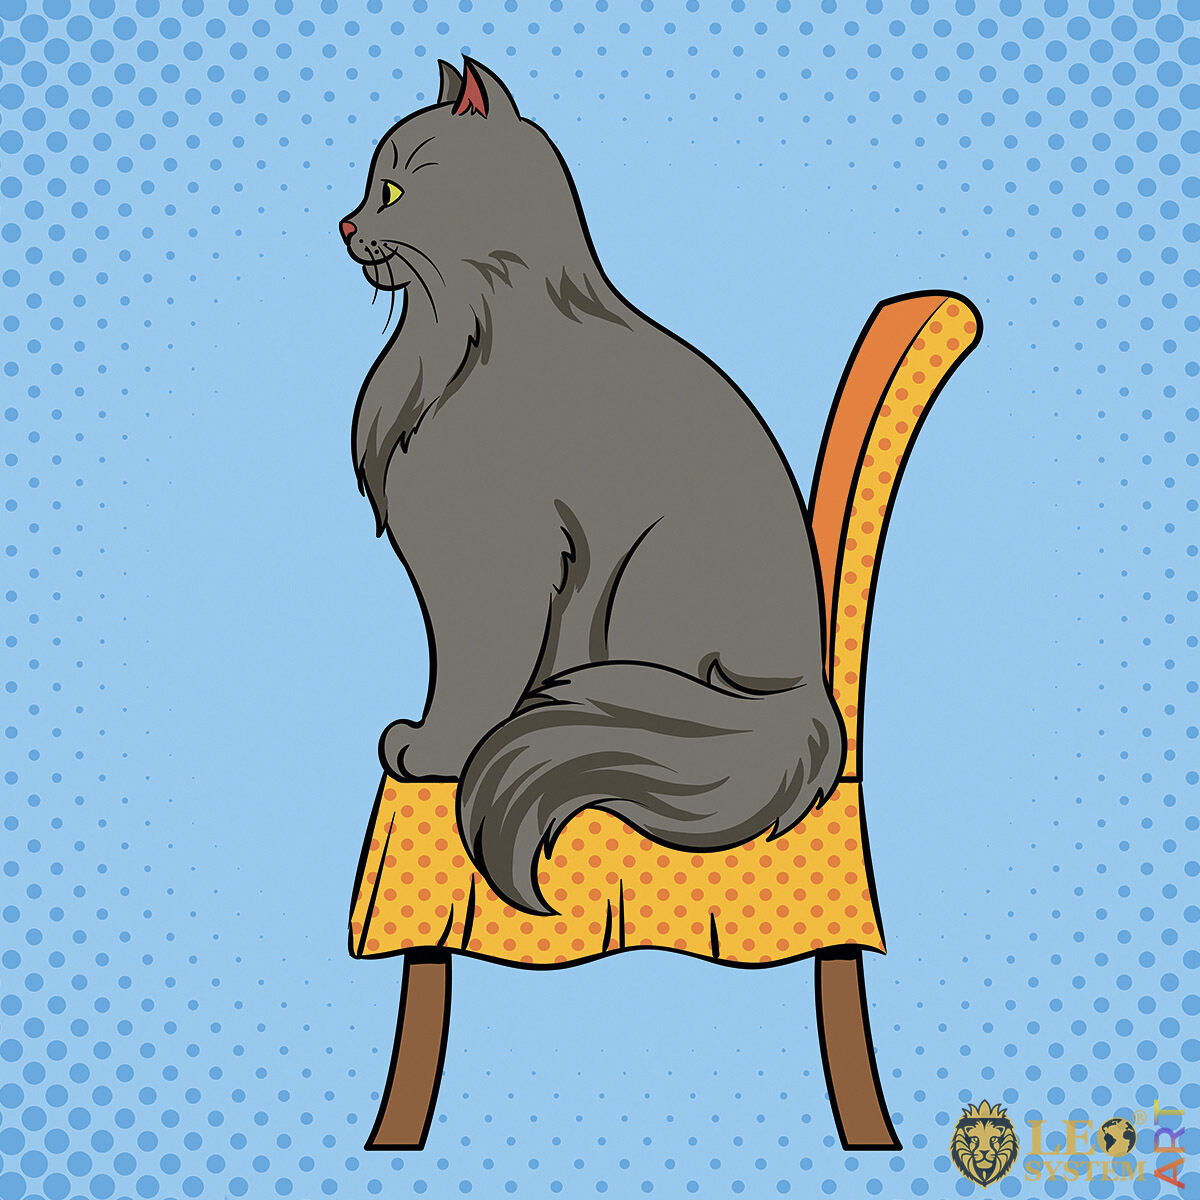 Beautiful cat sitting on a chair